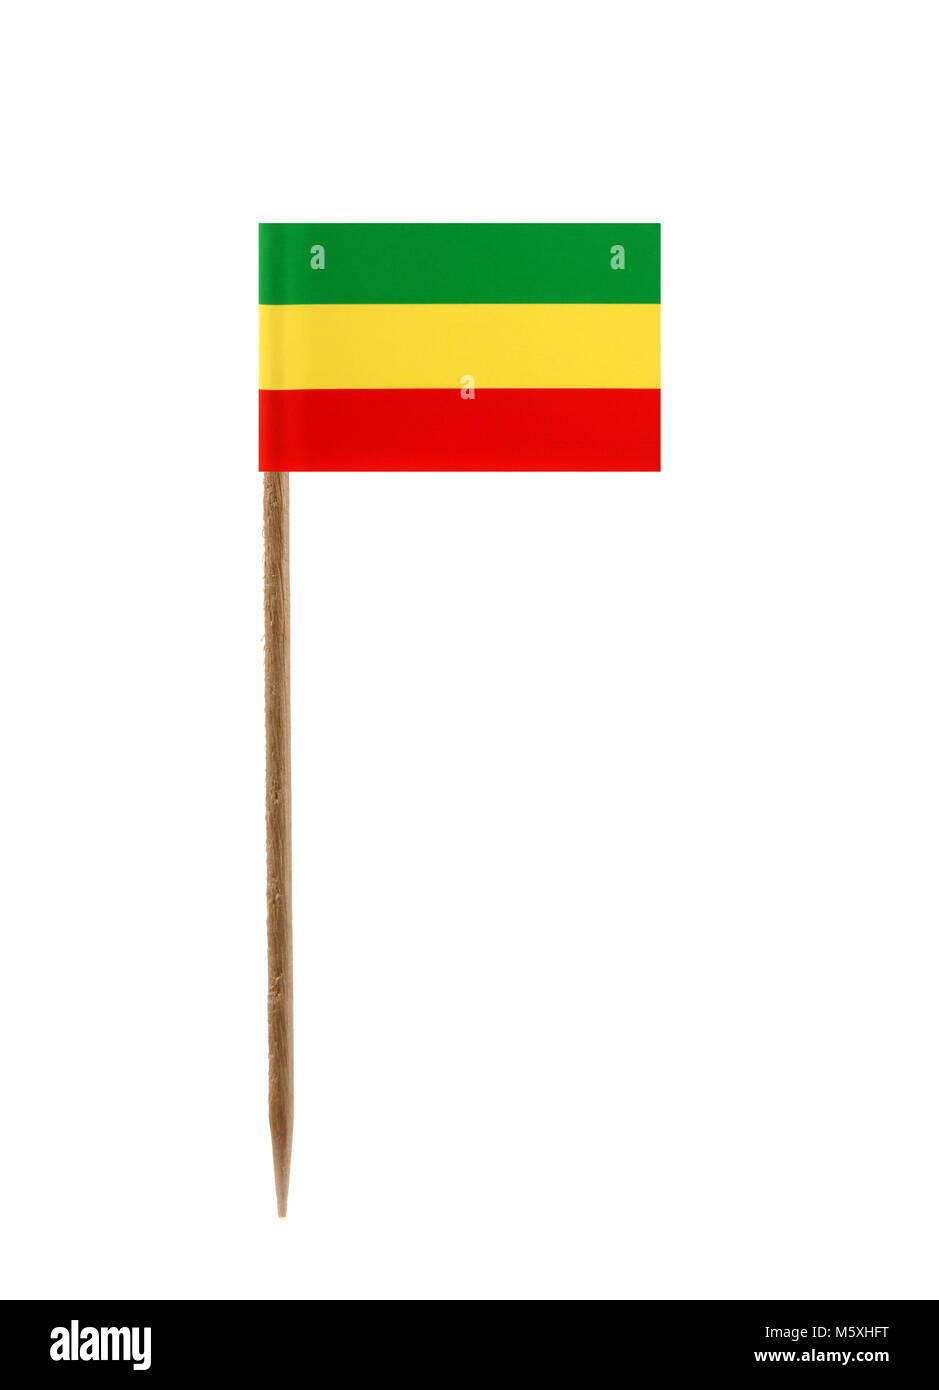 Tooth pick wit a small paper flag of Ethiopia - Stock Image